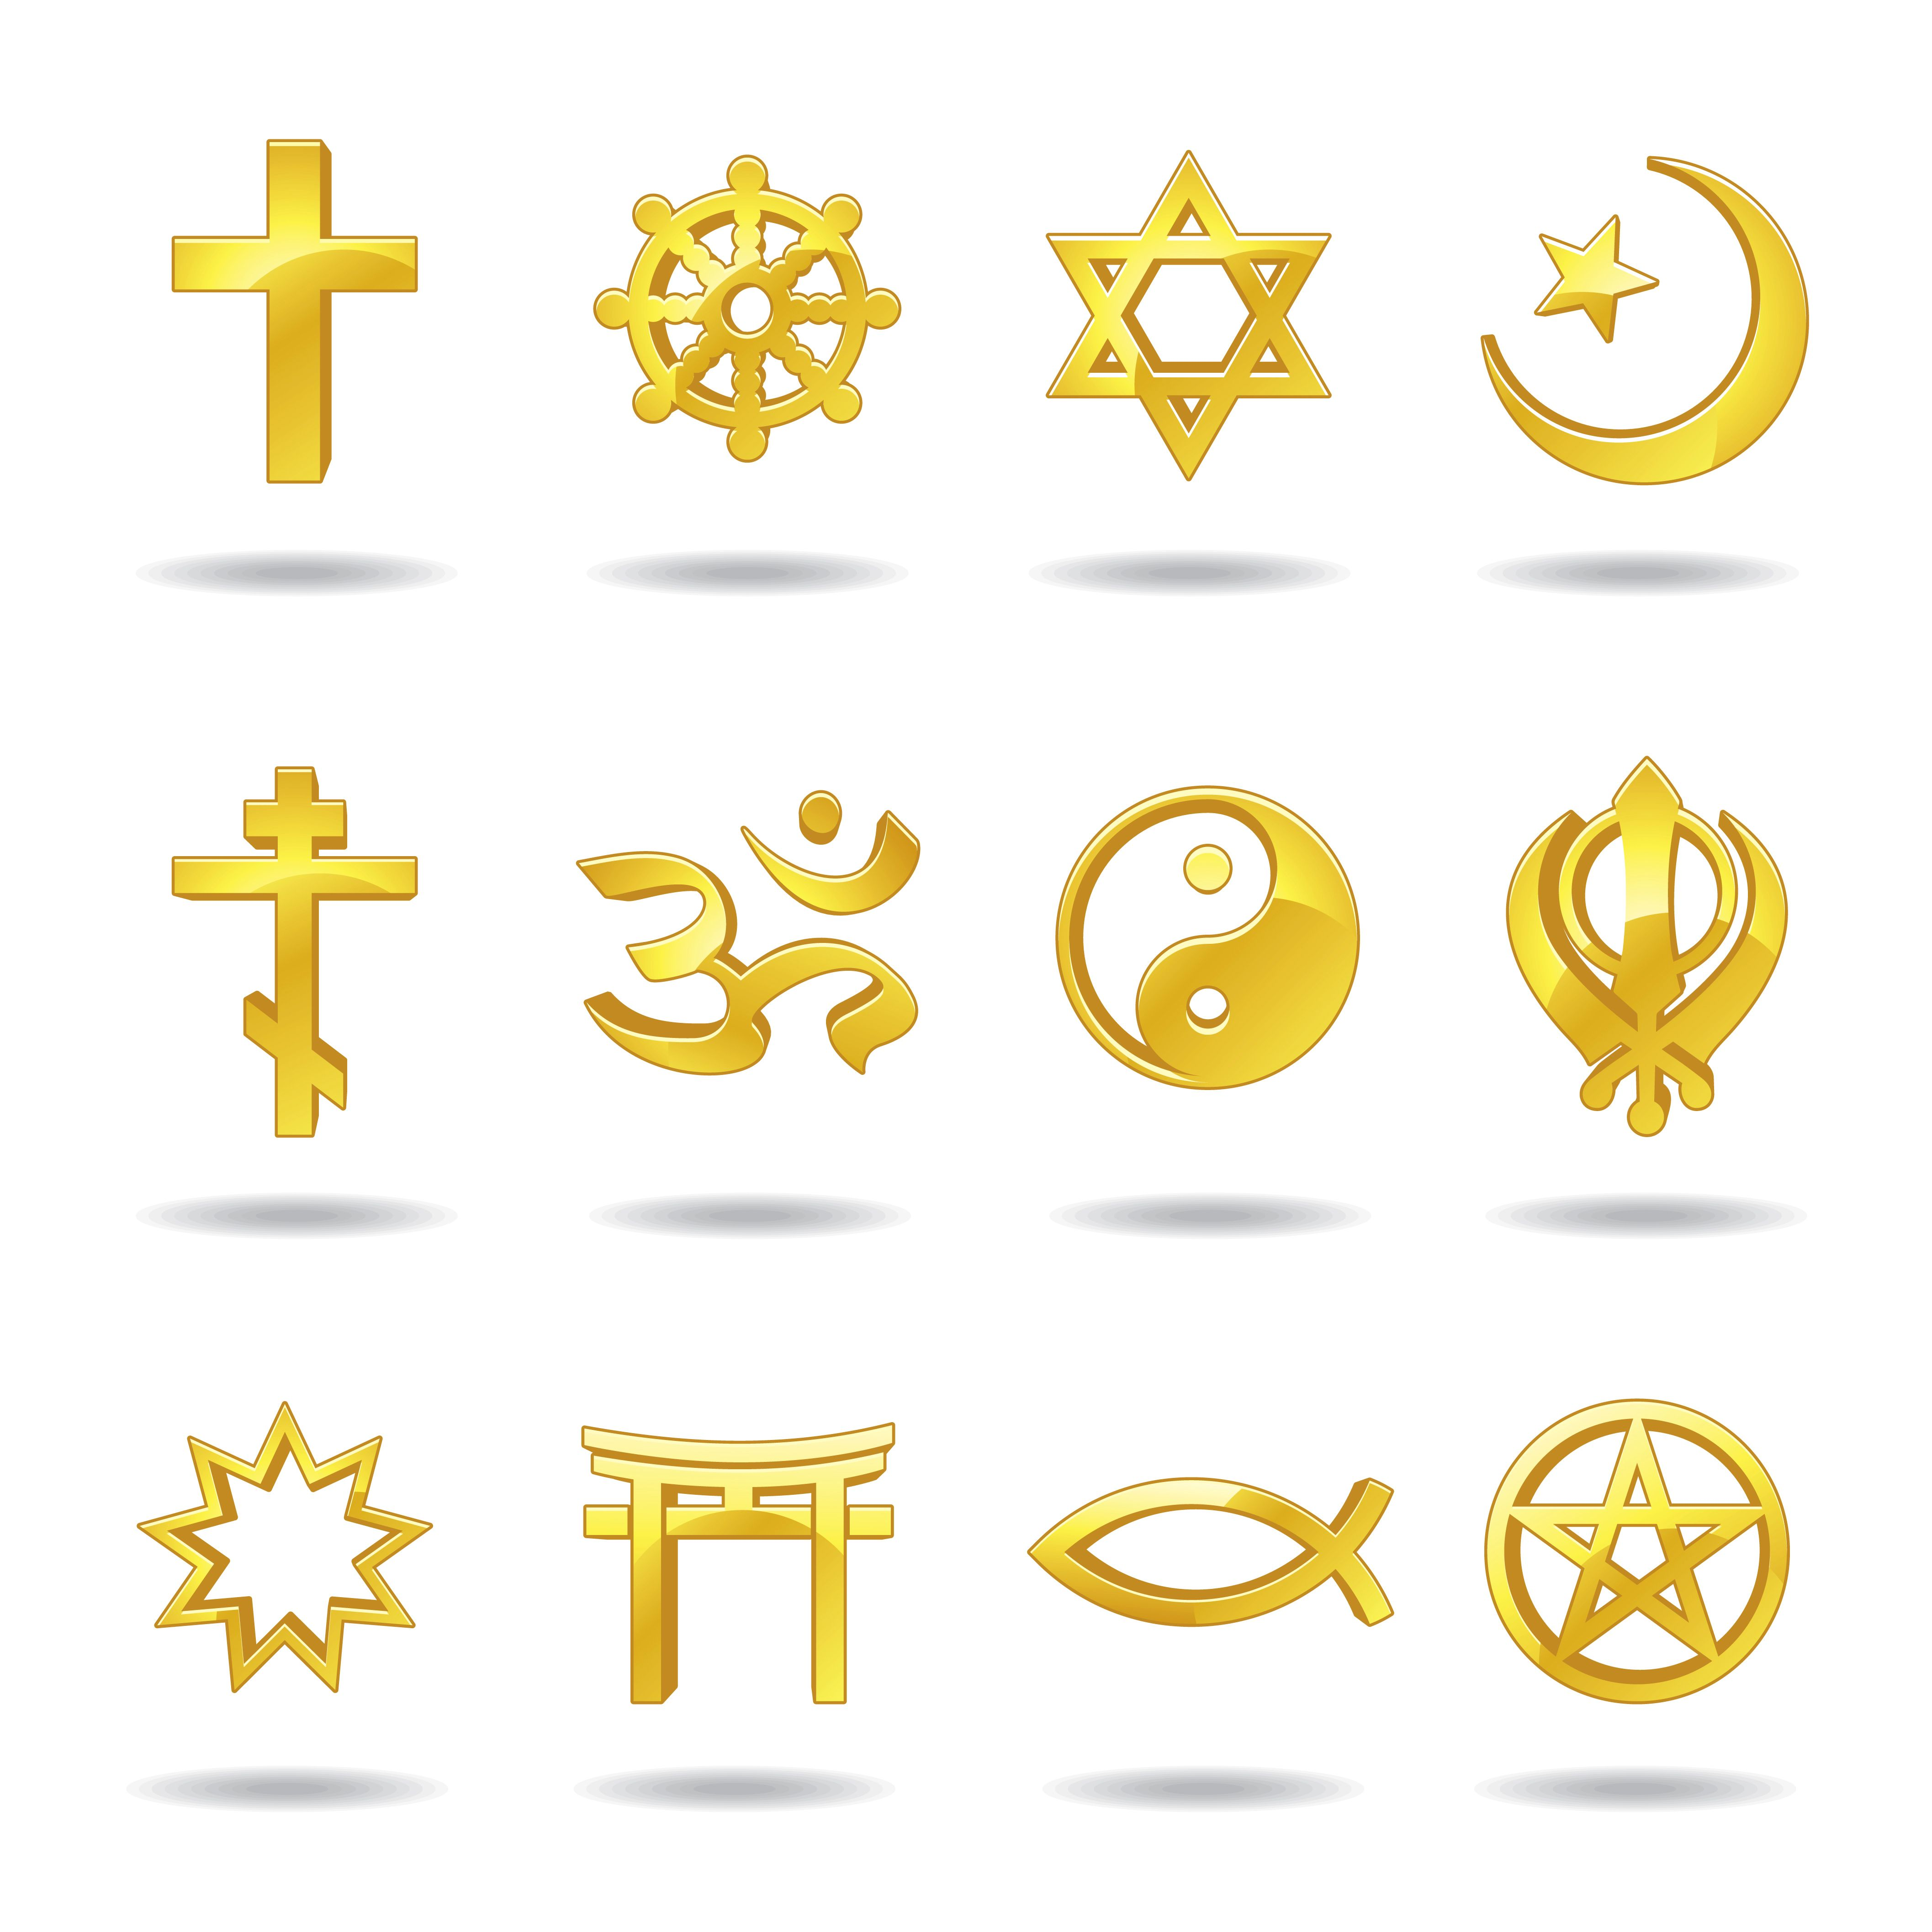 The religious symbols agnostic humanist first three i certainly the religious symbols agnostic humanist first three i certainly recognized as being part of the three abrahamic religions of christianity islam biocorpaavc Images